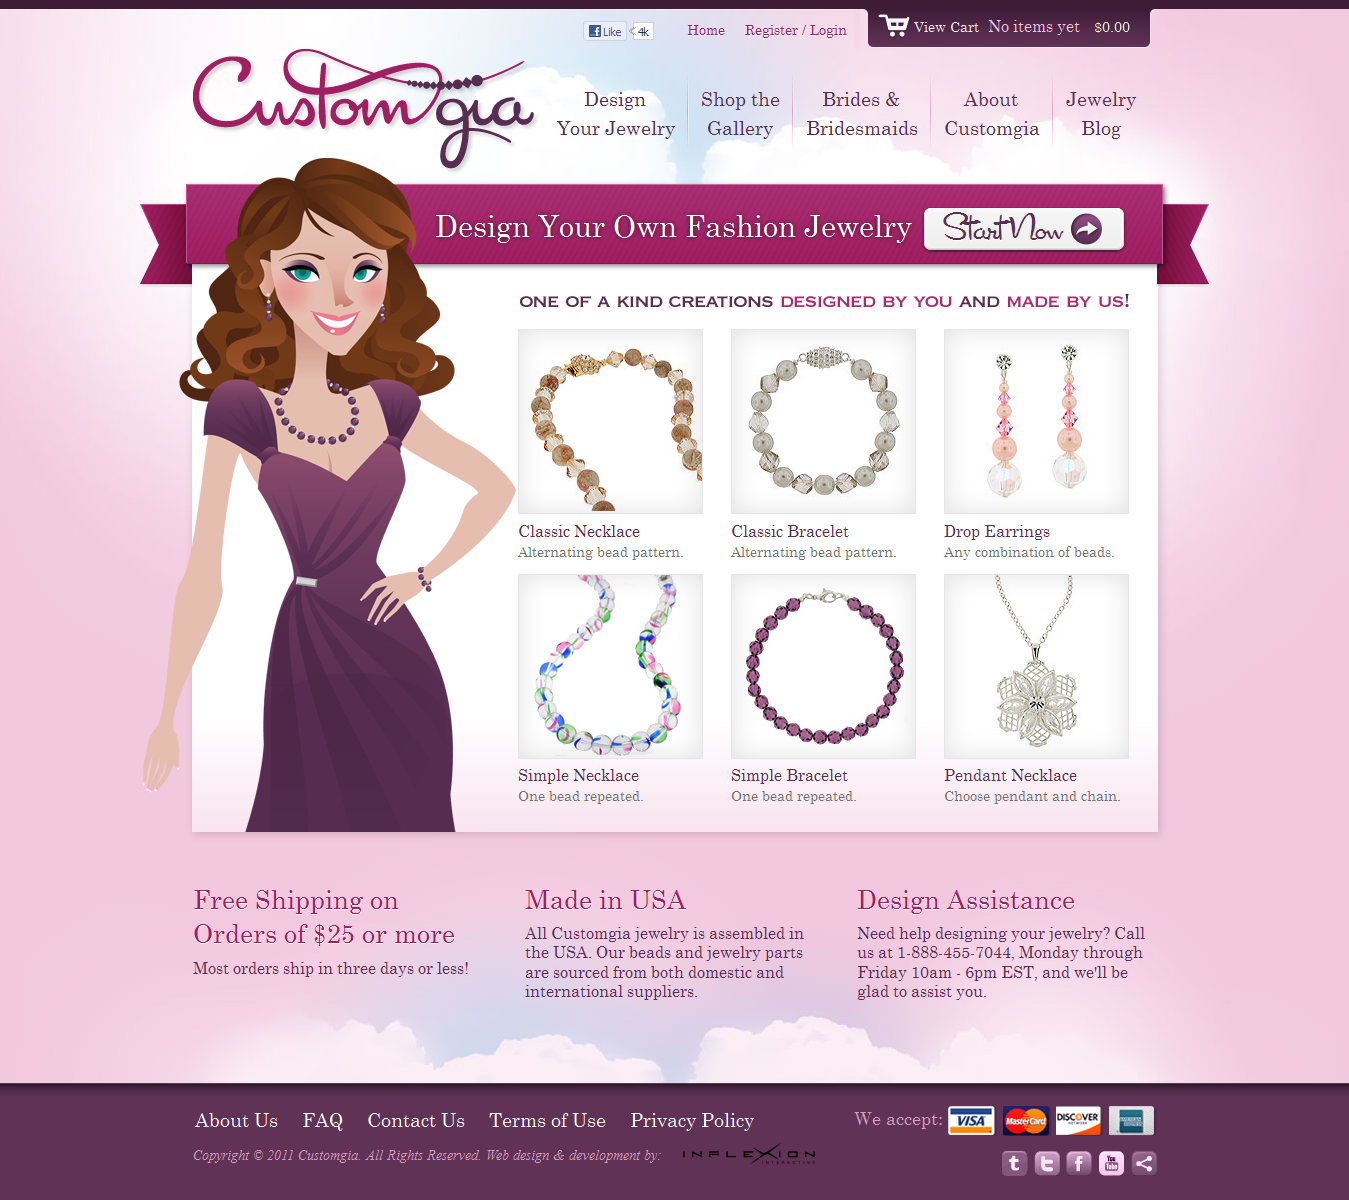 New Site Launch: Design Your Own Jewelry On CustomGia.com